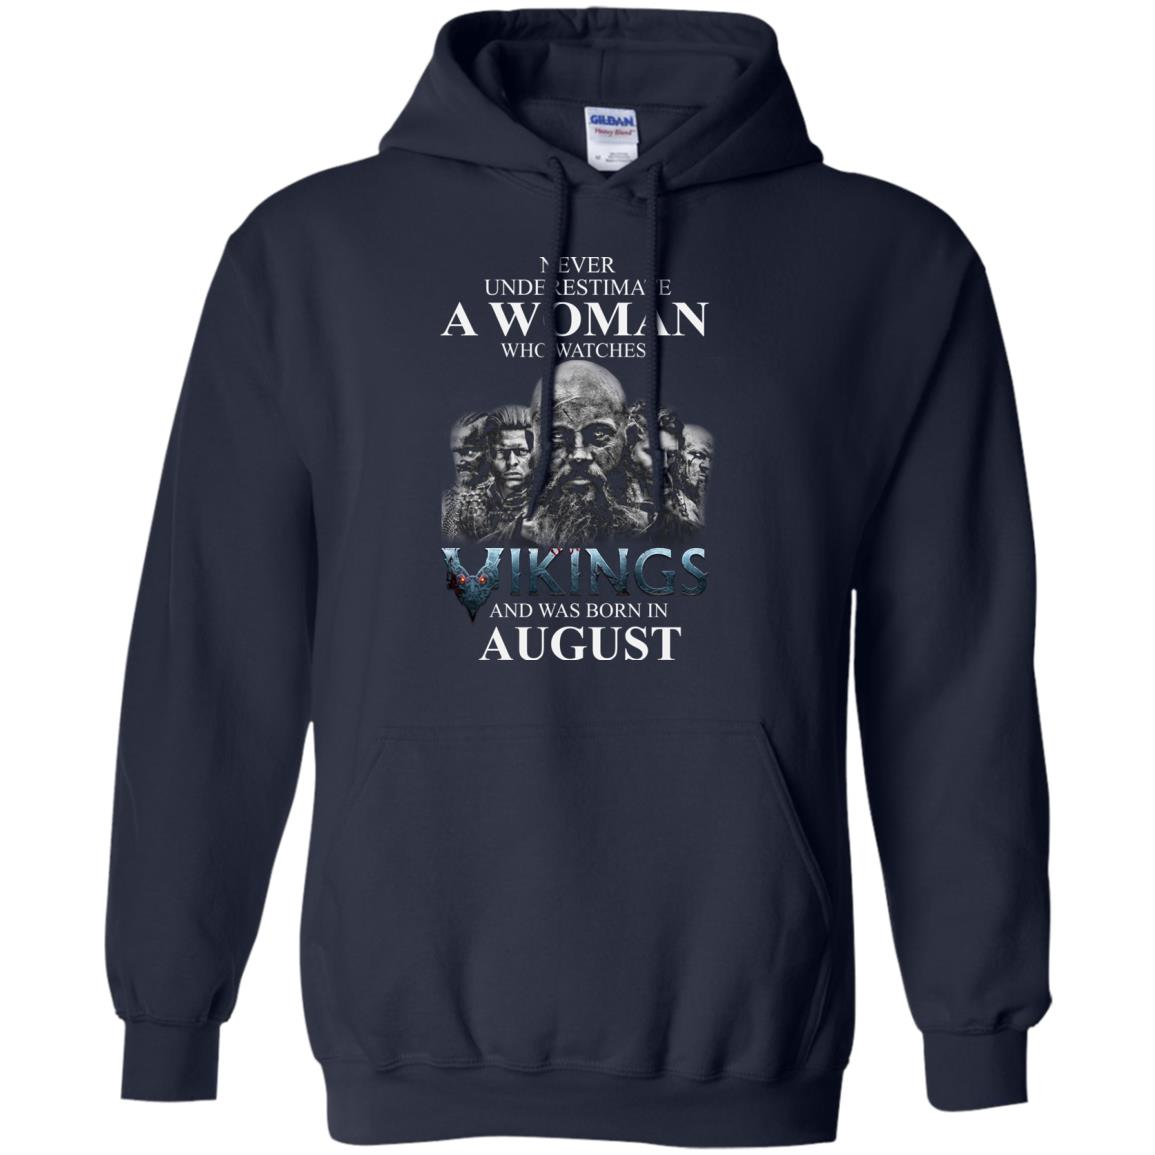 image 1272 - Never Underestimate A woman who watches Vikings and was born in August shirt